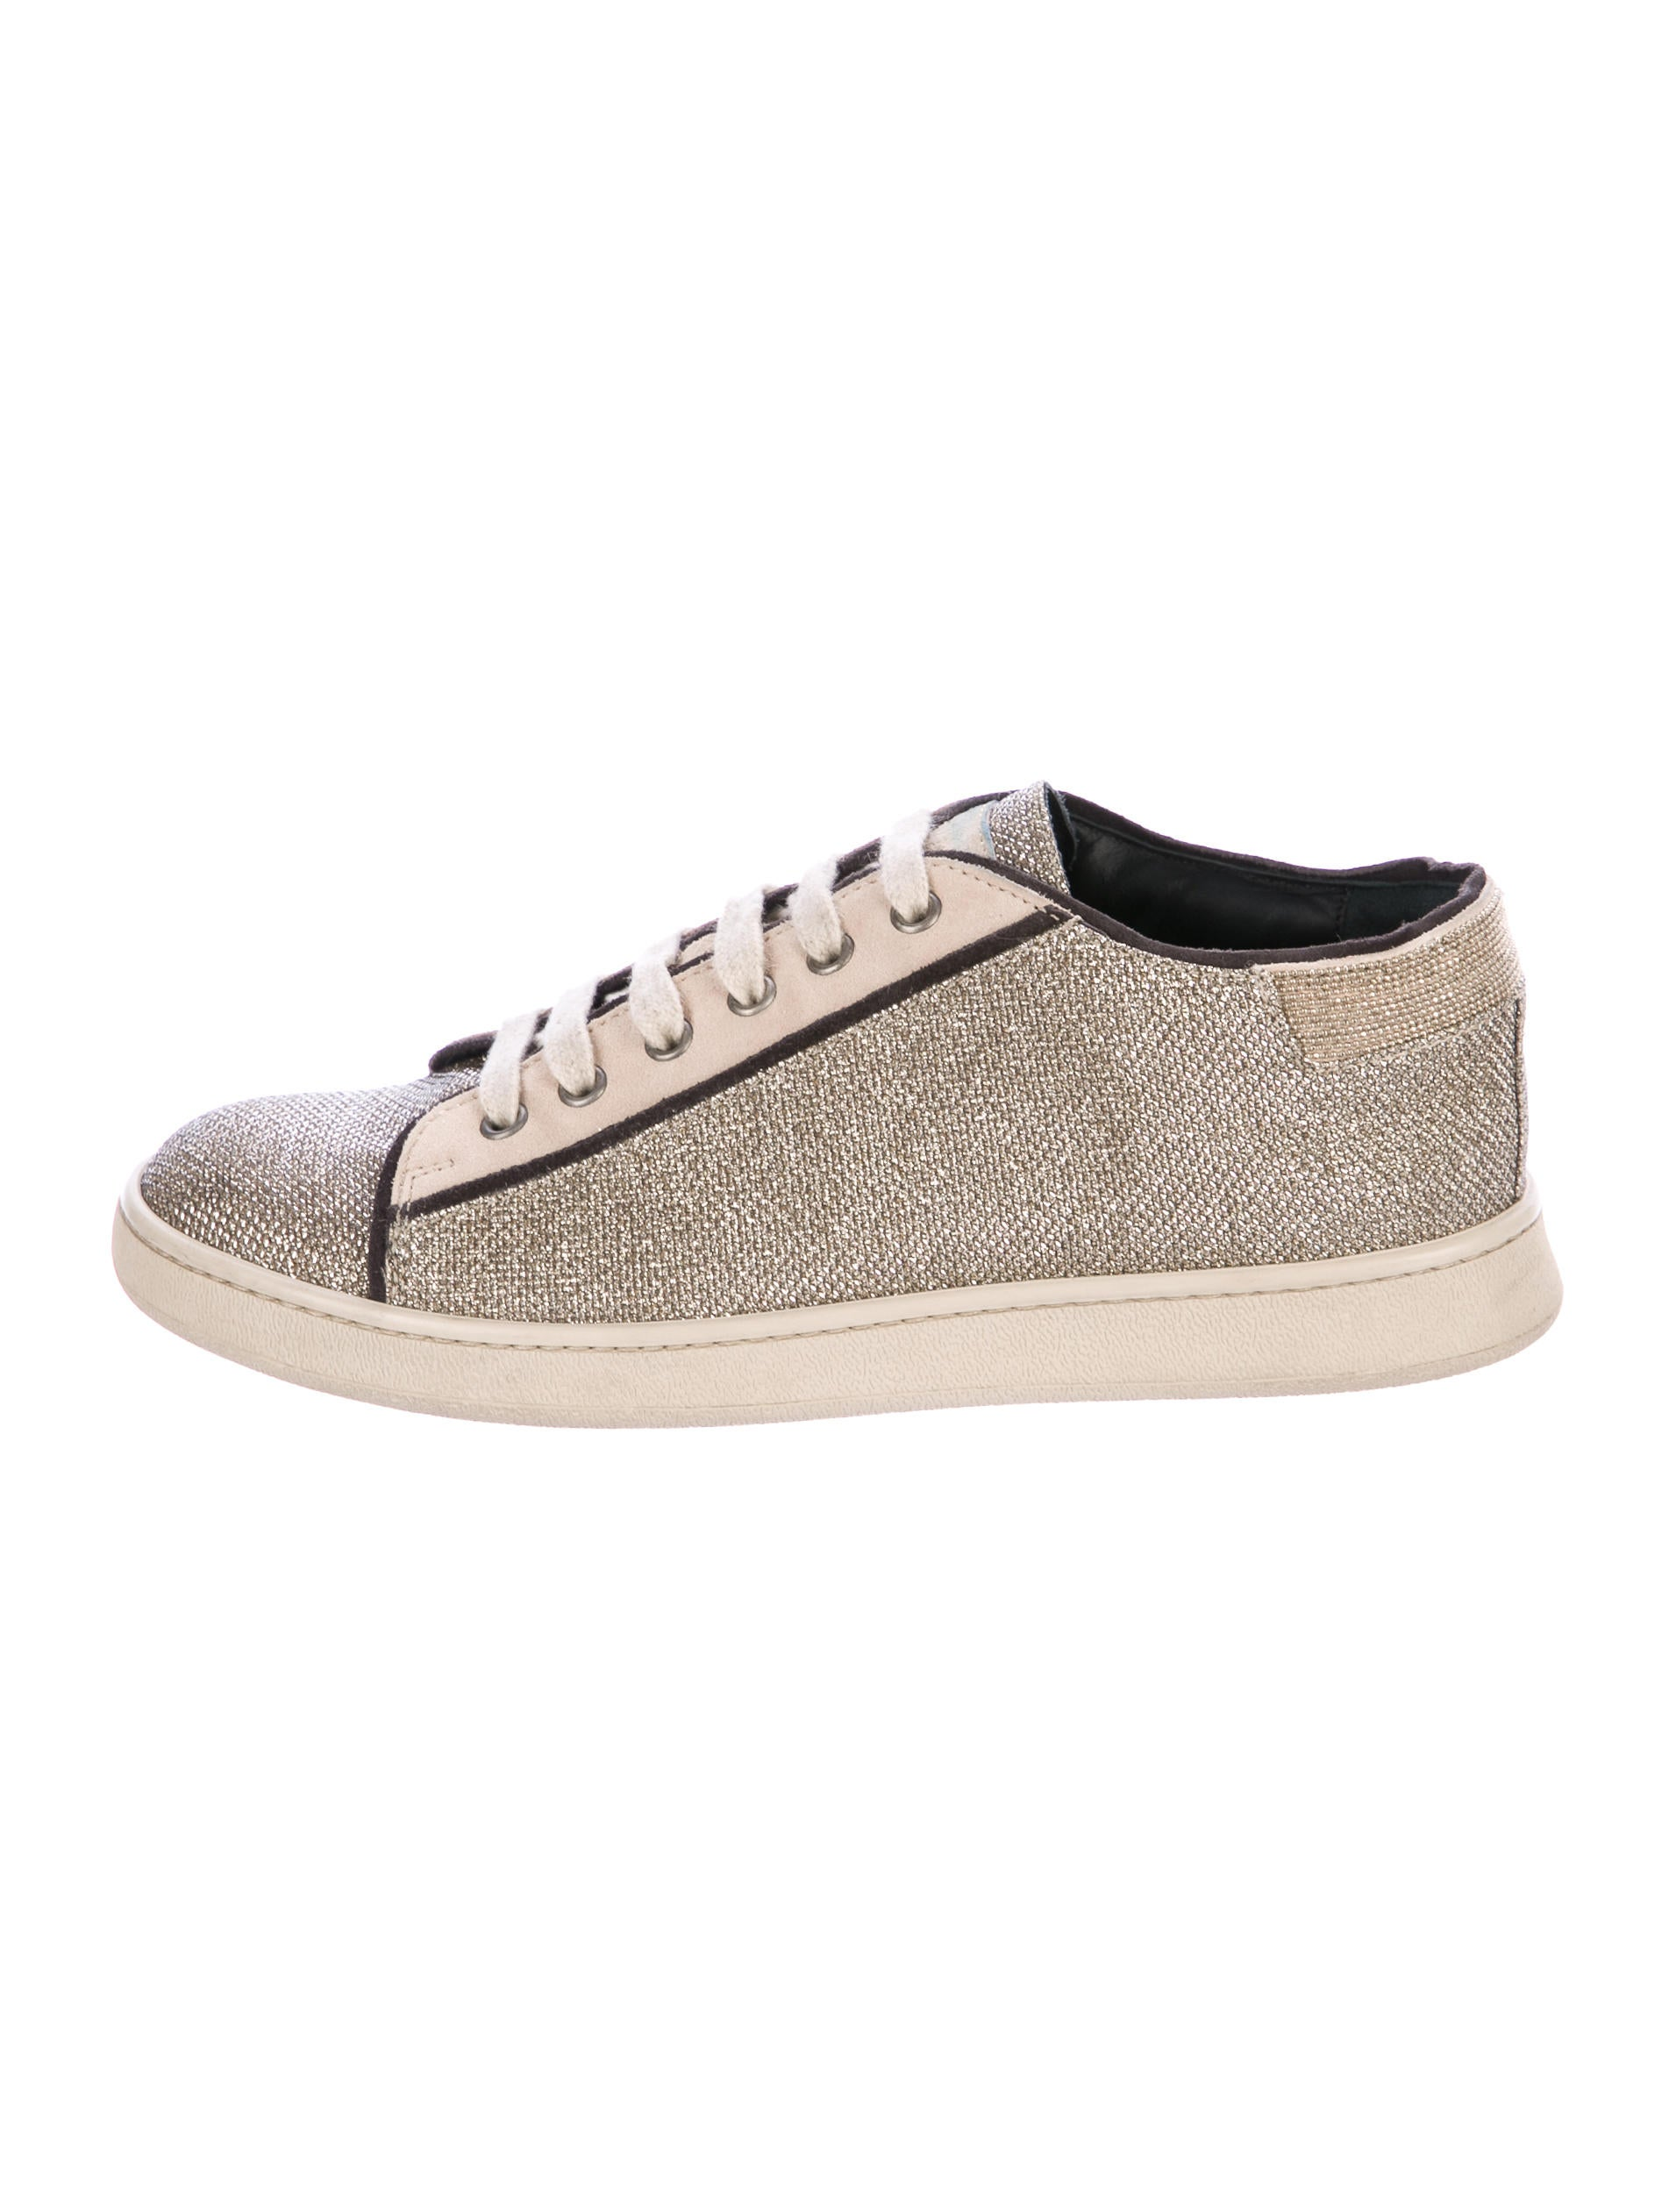 Brunello Cucinelli Monilli Low-Top Sneakers clearance official site pictures original online clearance popular sale browse mhGDjJ